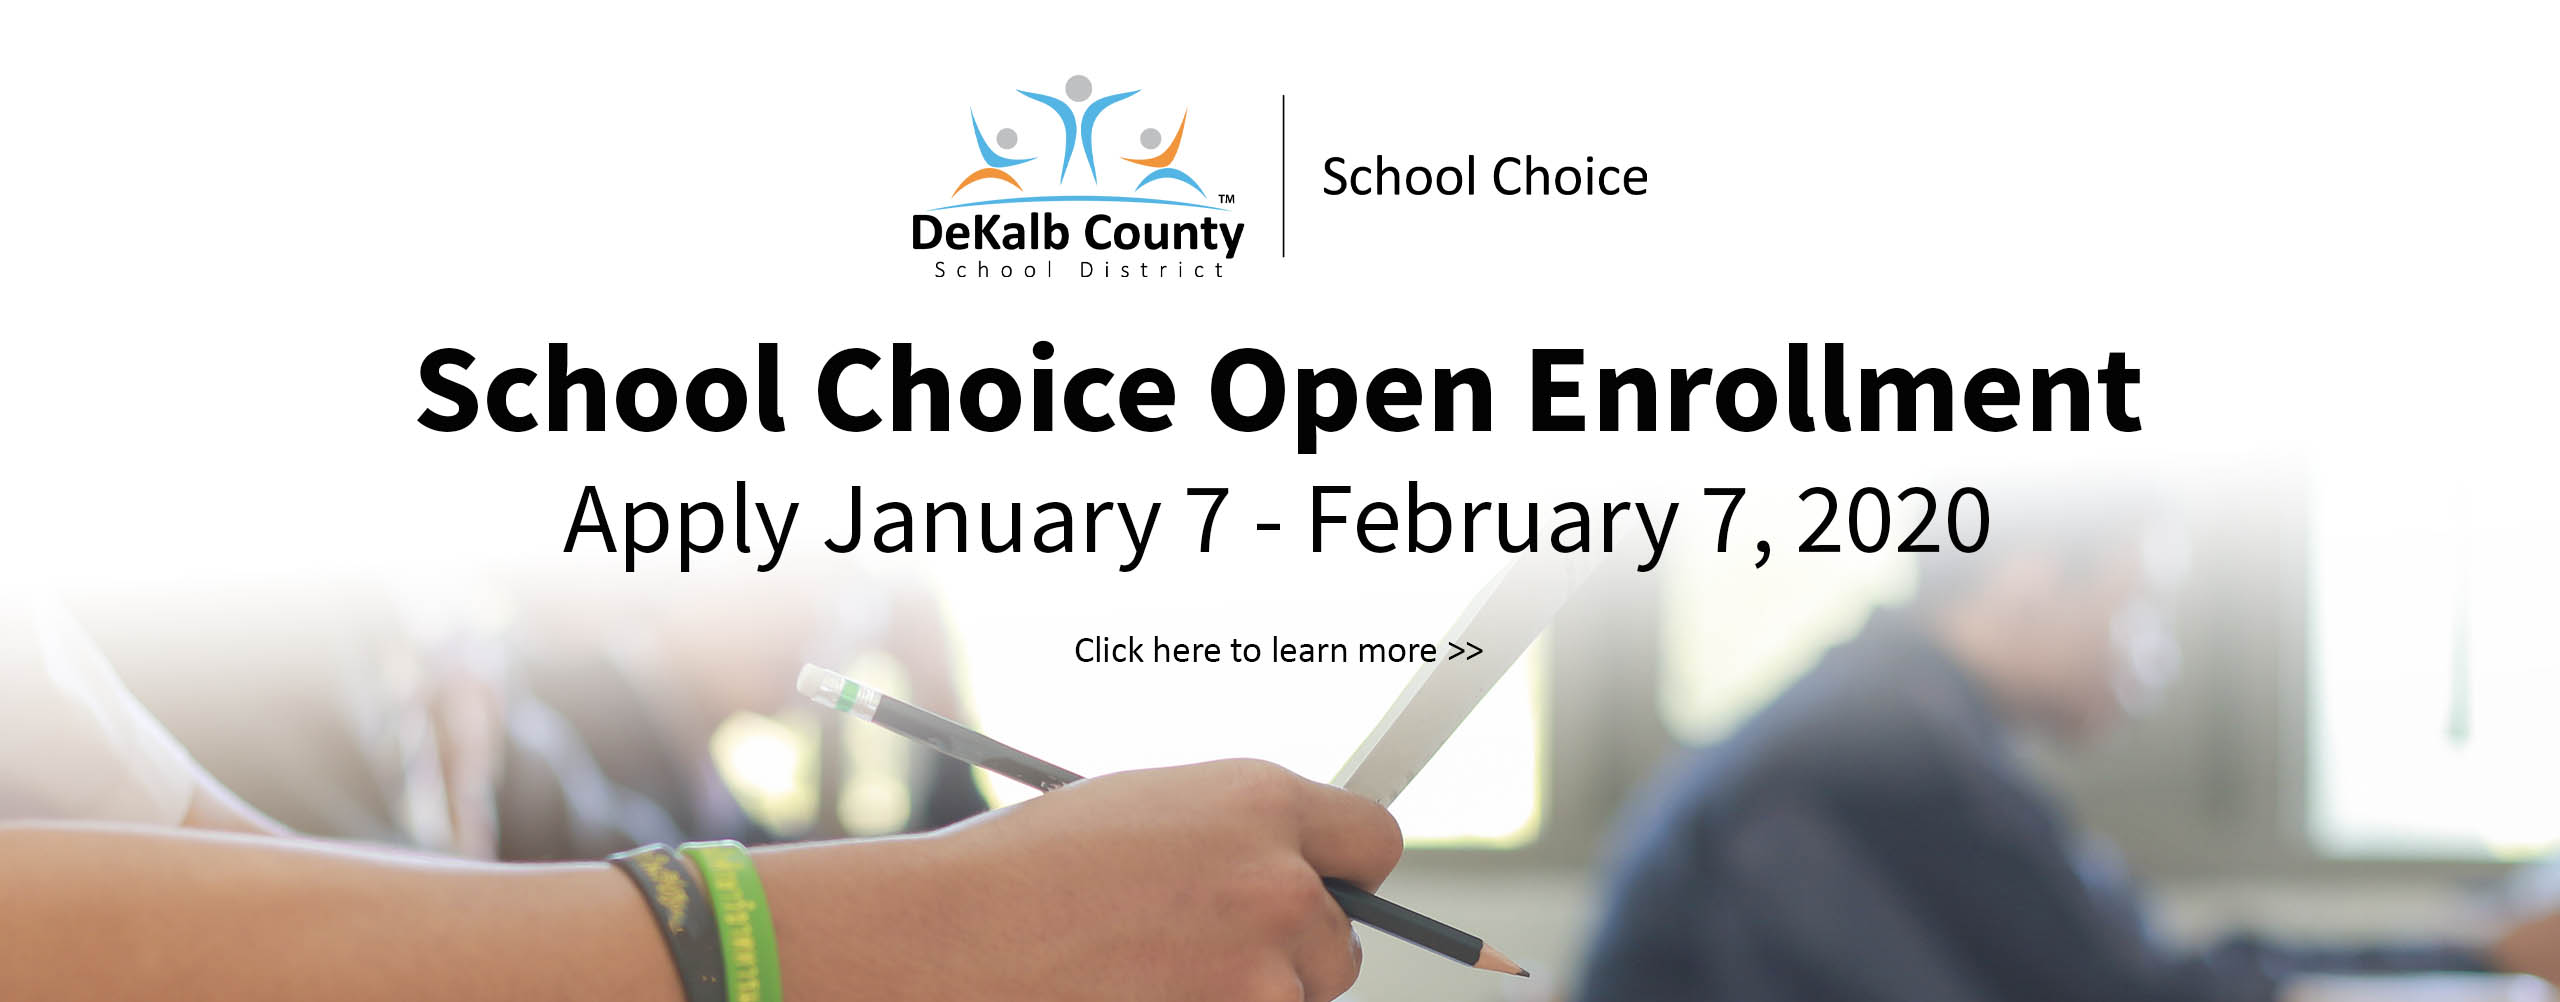 school choice web banner 2020